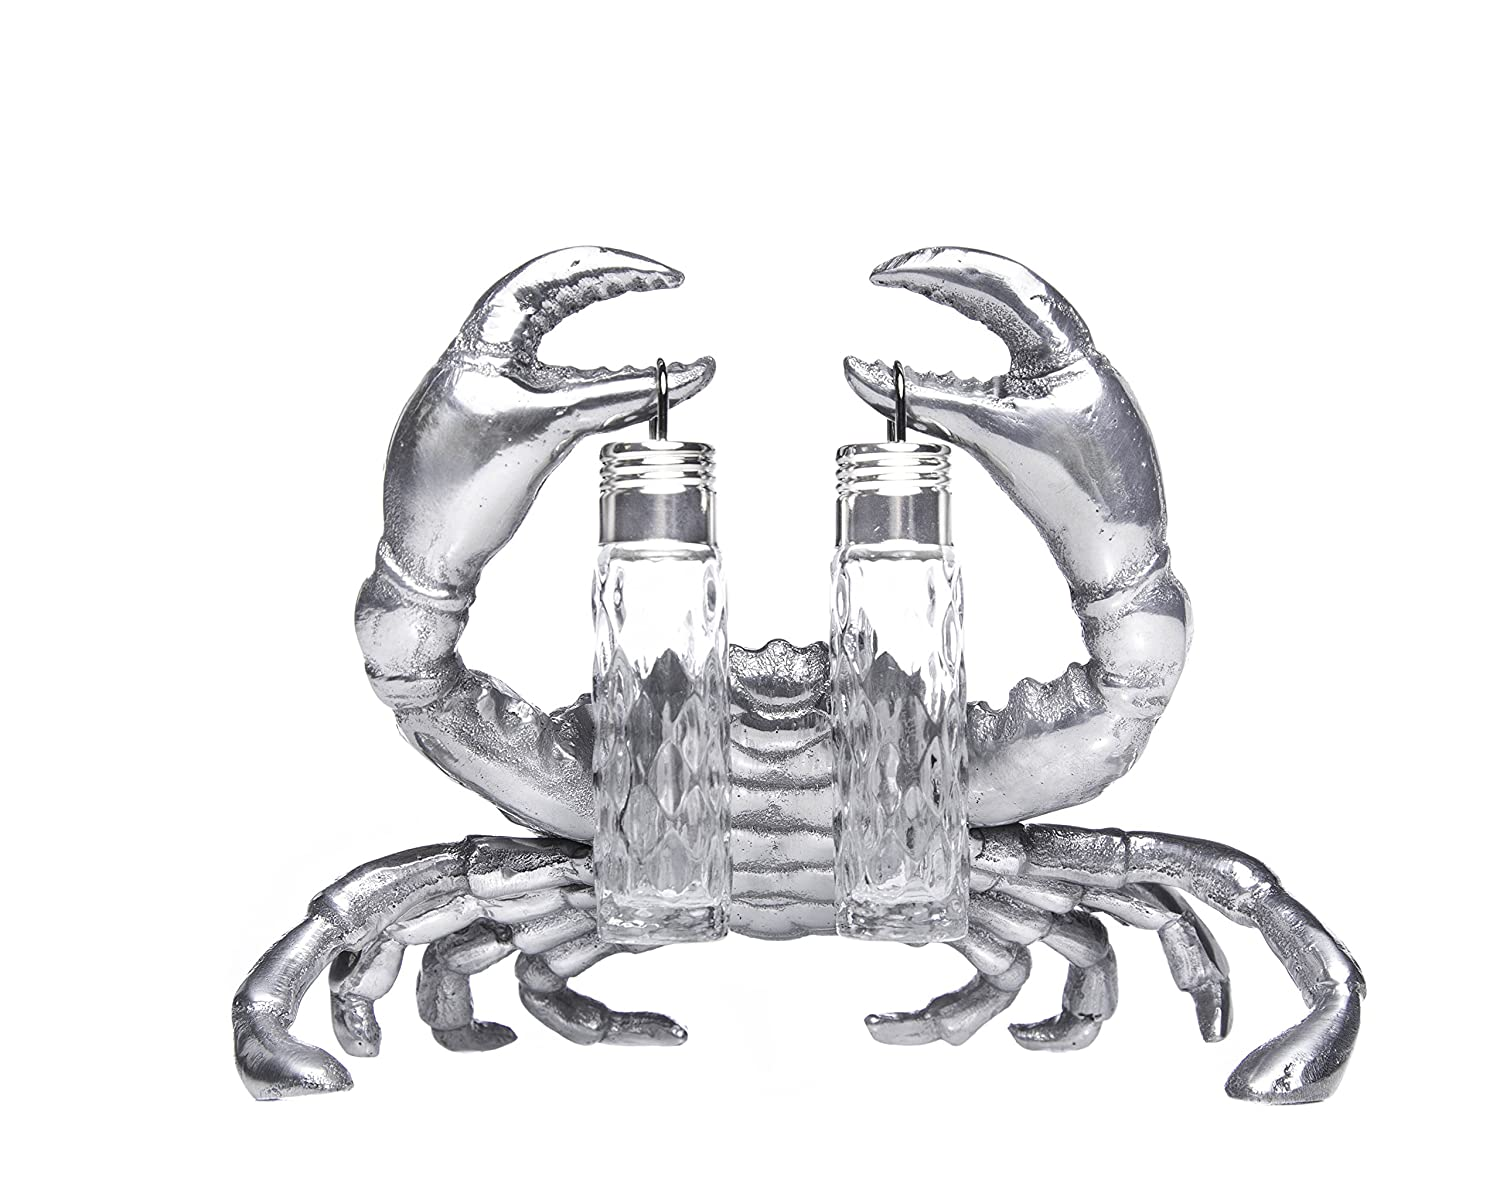 Christmas Tablescape Décor - Silver aluminum alloy crab stand for hanging glass salt and pepper shakers by Arthur Court Designs